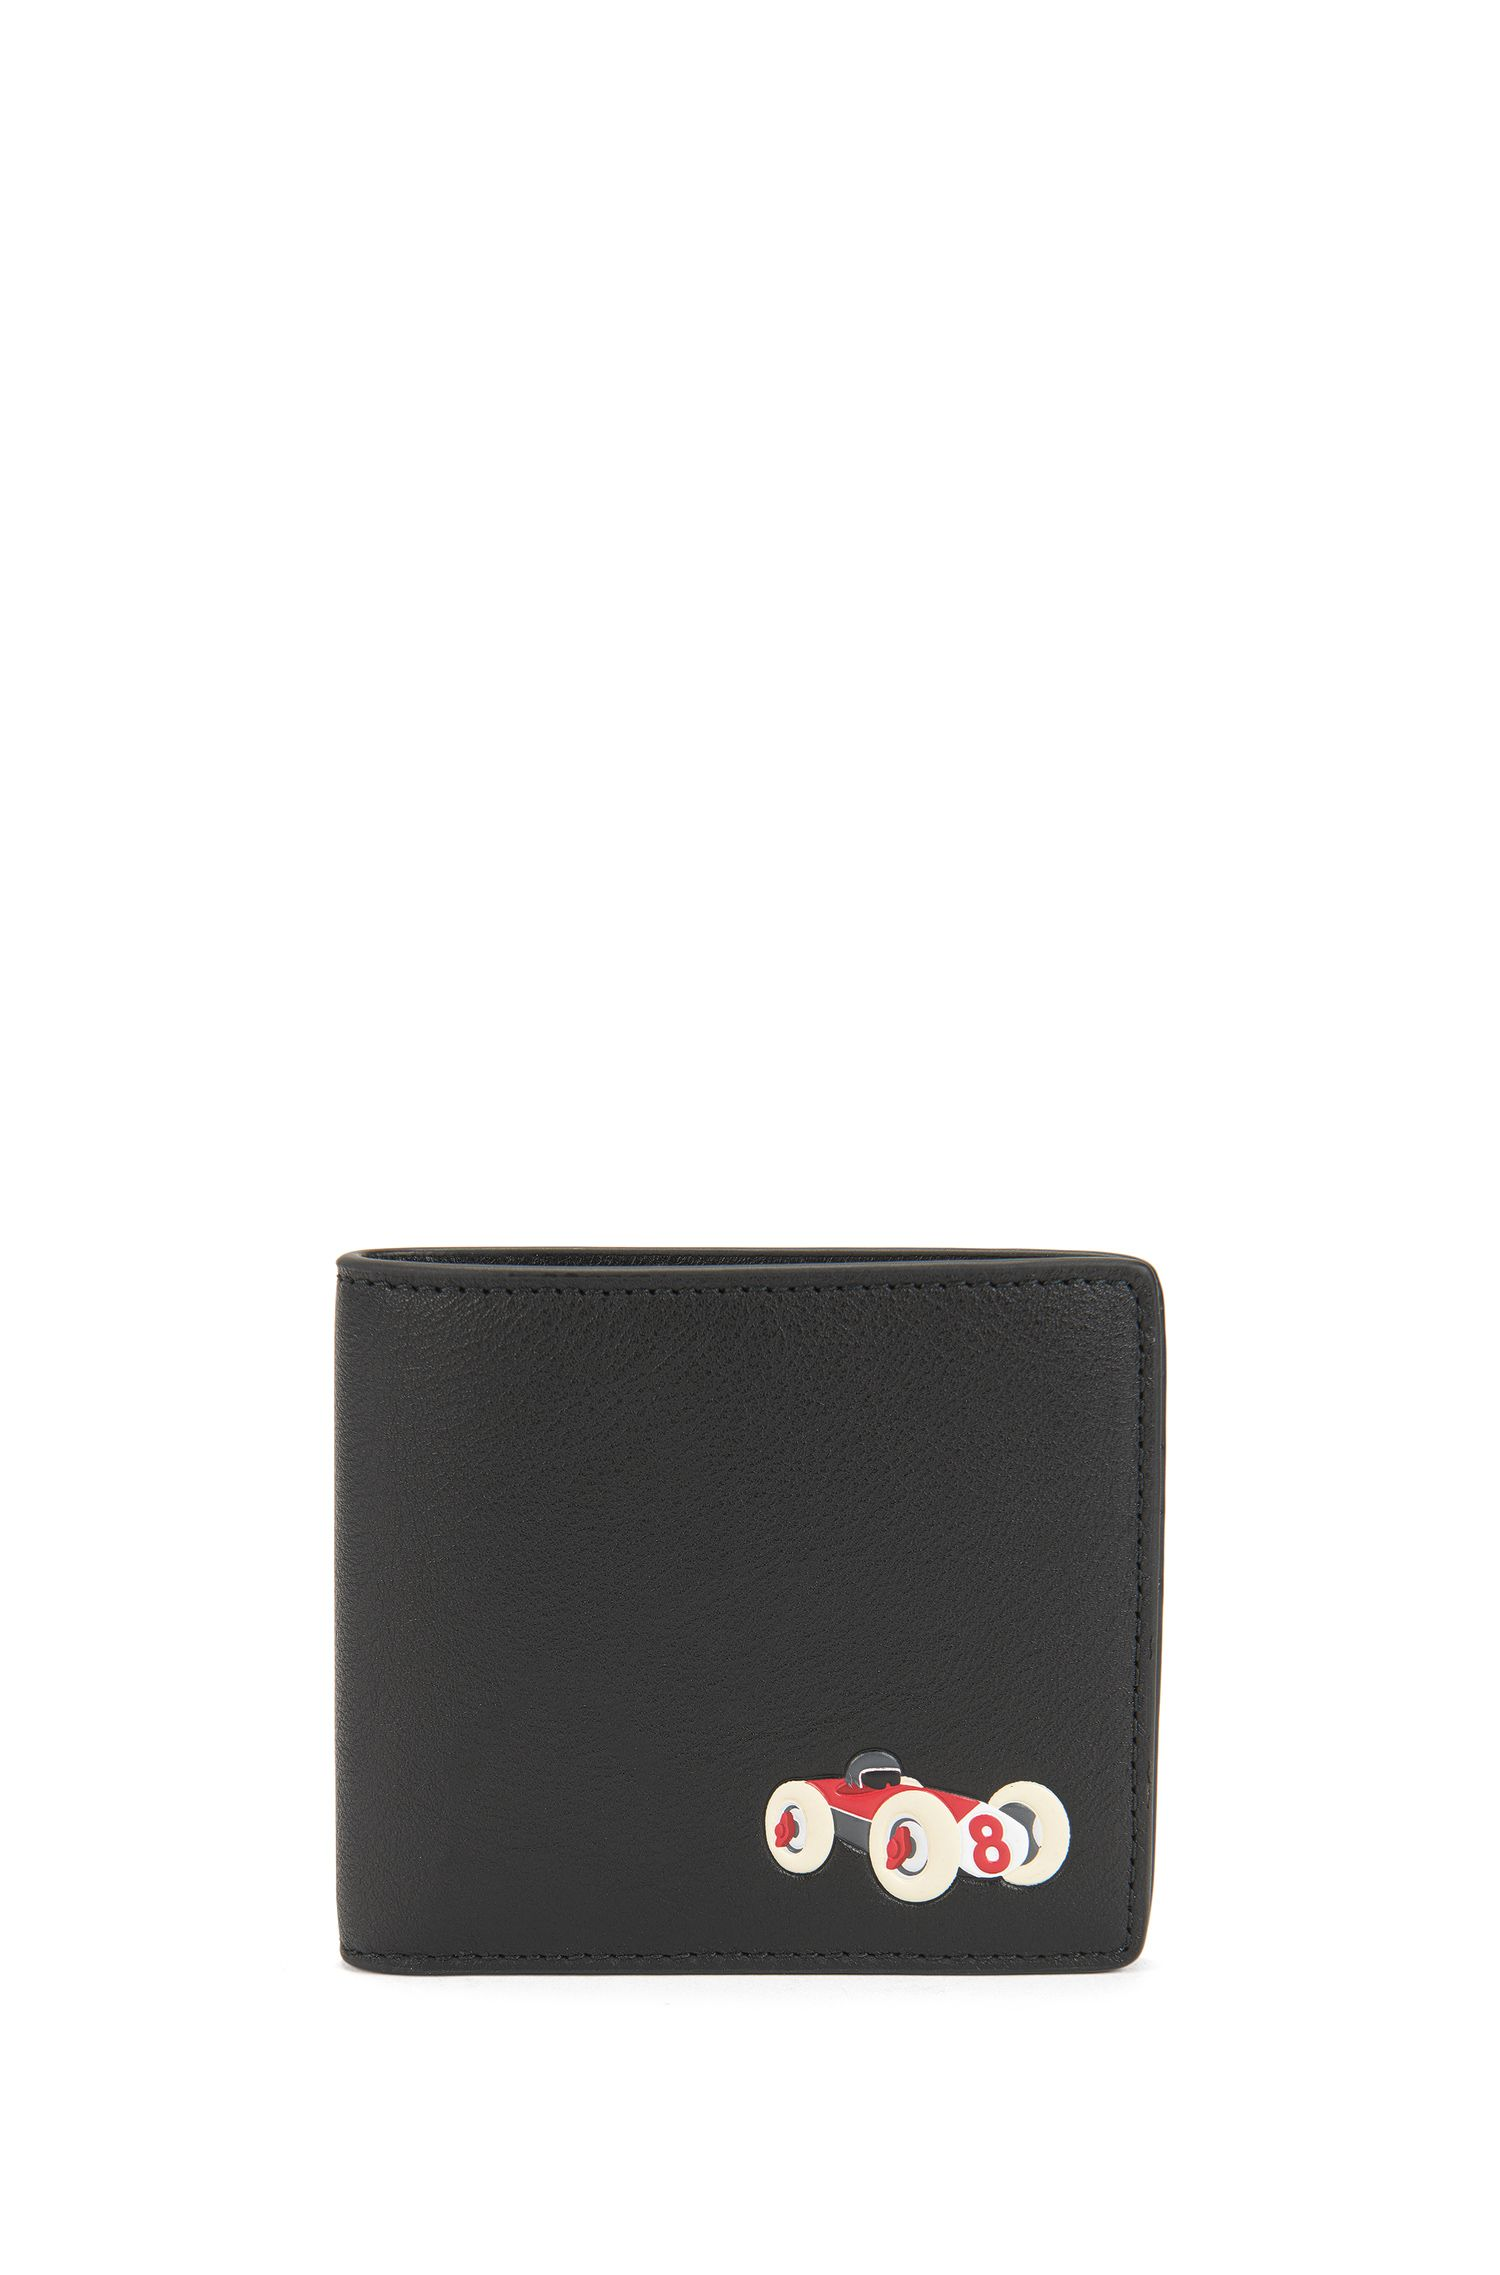 Leather bifold wallet with race car motif